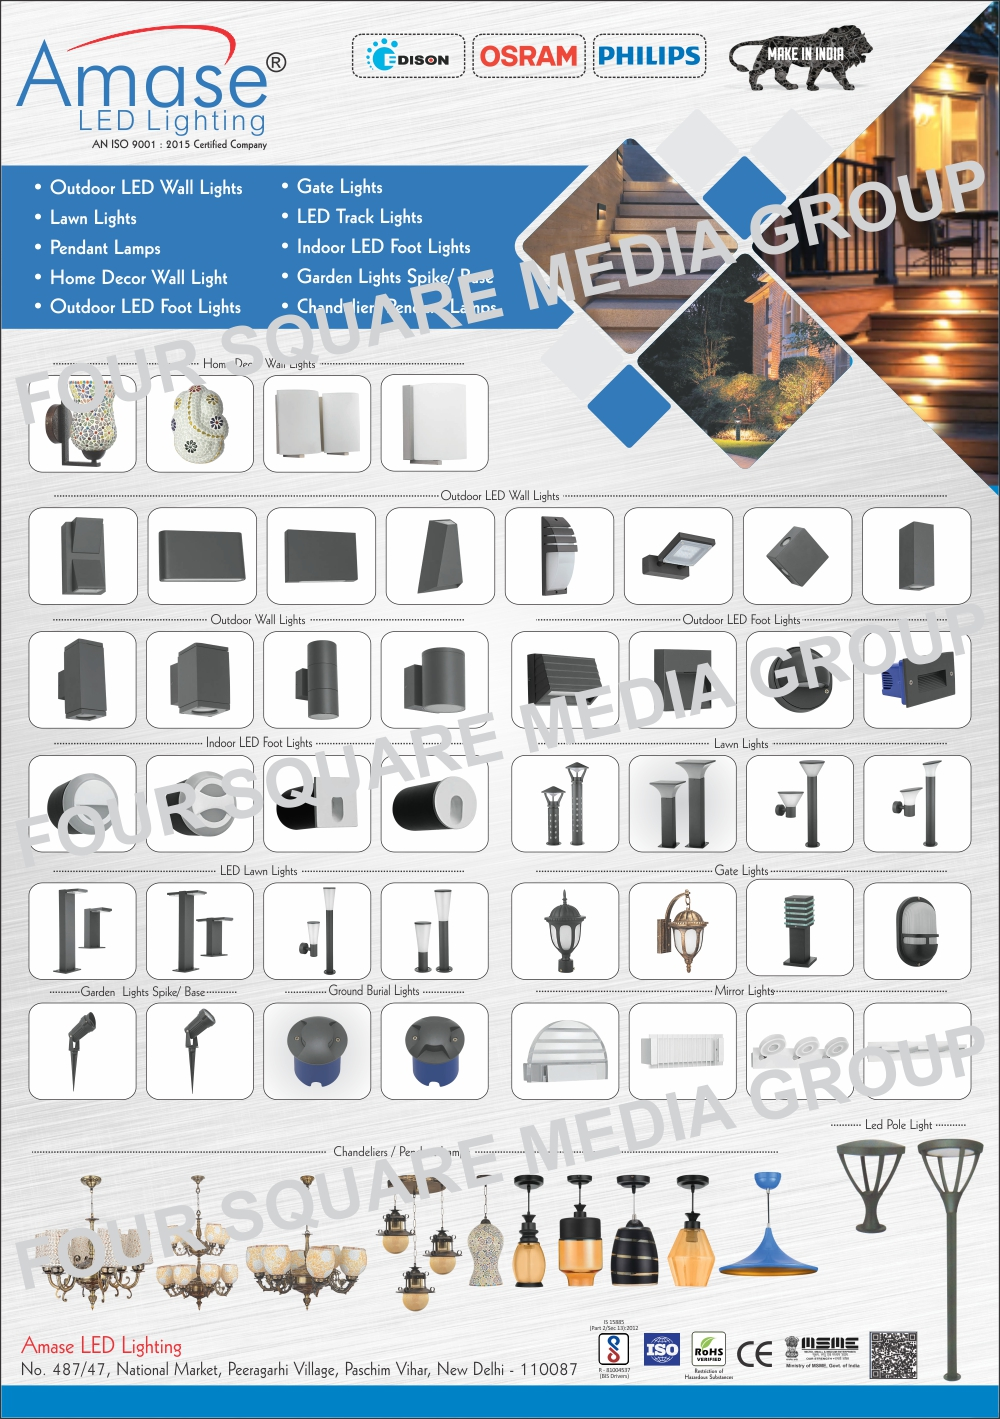 Led Lights, Interior Led Lights, Led Interior Lights, Led Exterior Lights, Exterior Led Lights, Led Panel Lights, Led Back Lights, Led Backlights, Led Down Lights, Led Fancy Lights, Led Bollards, Led Hanging Lights, Led Wall Lights, Square Led Bollards, Round Led Bollards, Led Hanging Lights, Led Wall Lights, Led Spike Lights, Led Gate Lights, Wall Mountings, Lawn Lights, Pendant Lamps, Home Decor Wall Lights, Outdoor Led Foot Lights, Led Track Lights, Indoor Led Foot Lights, Garden Lights, Outdoor Wall Lights, Outdoor Led Wall Lights, Chandeliers Lamps, Ground Burial Lights, Mirror Lights